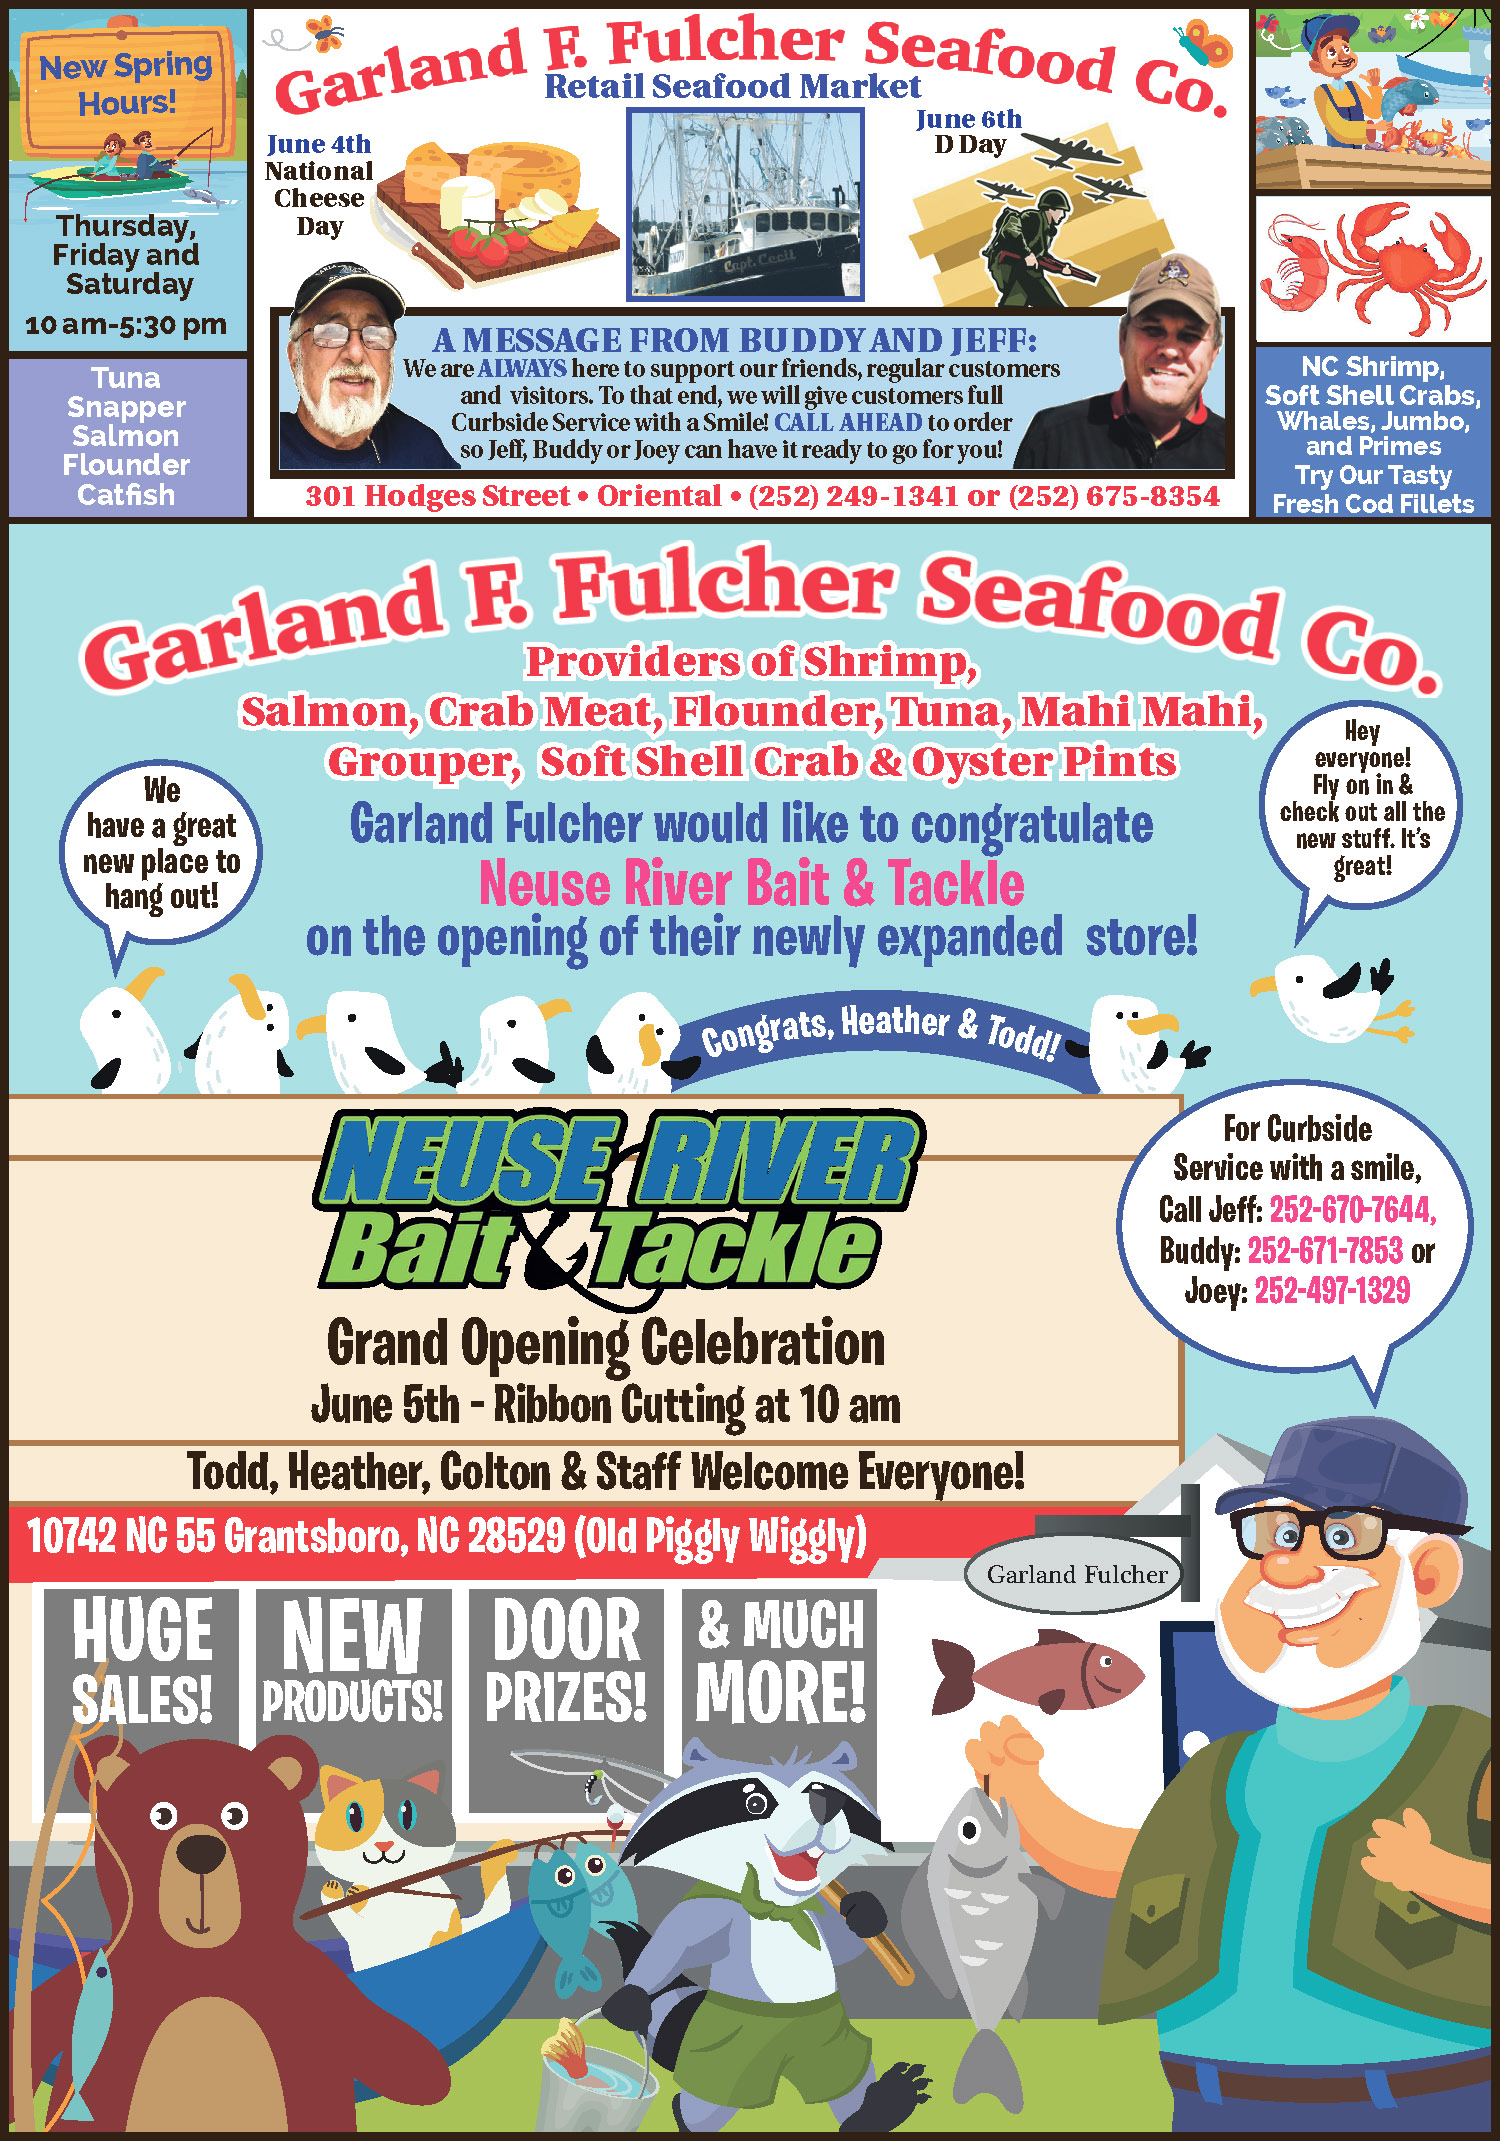 06-03-2021 Garland Fulcher Full Page Color